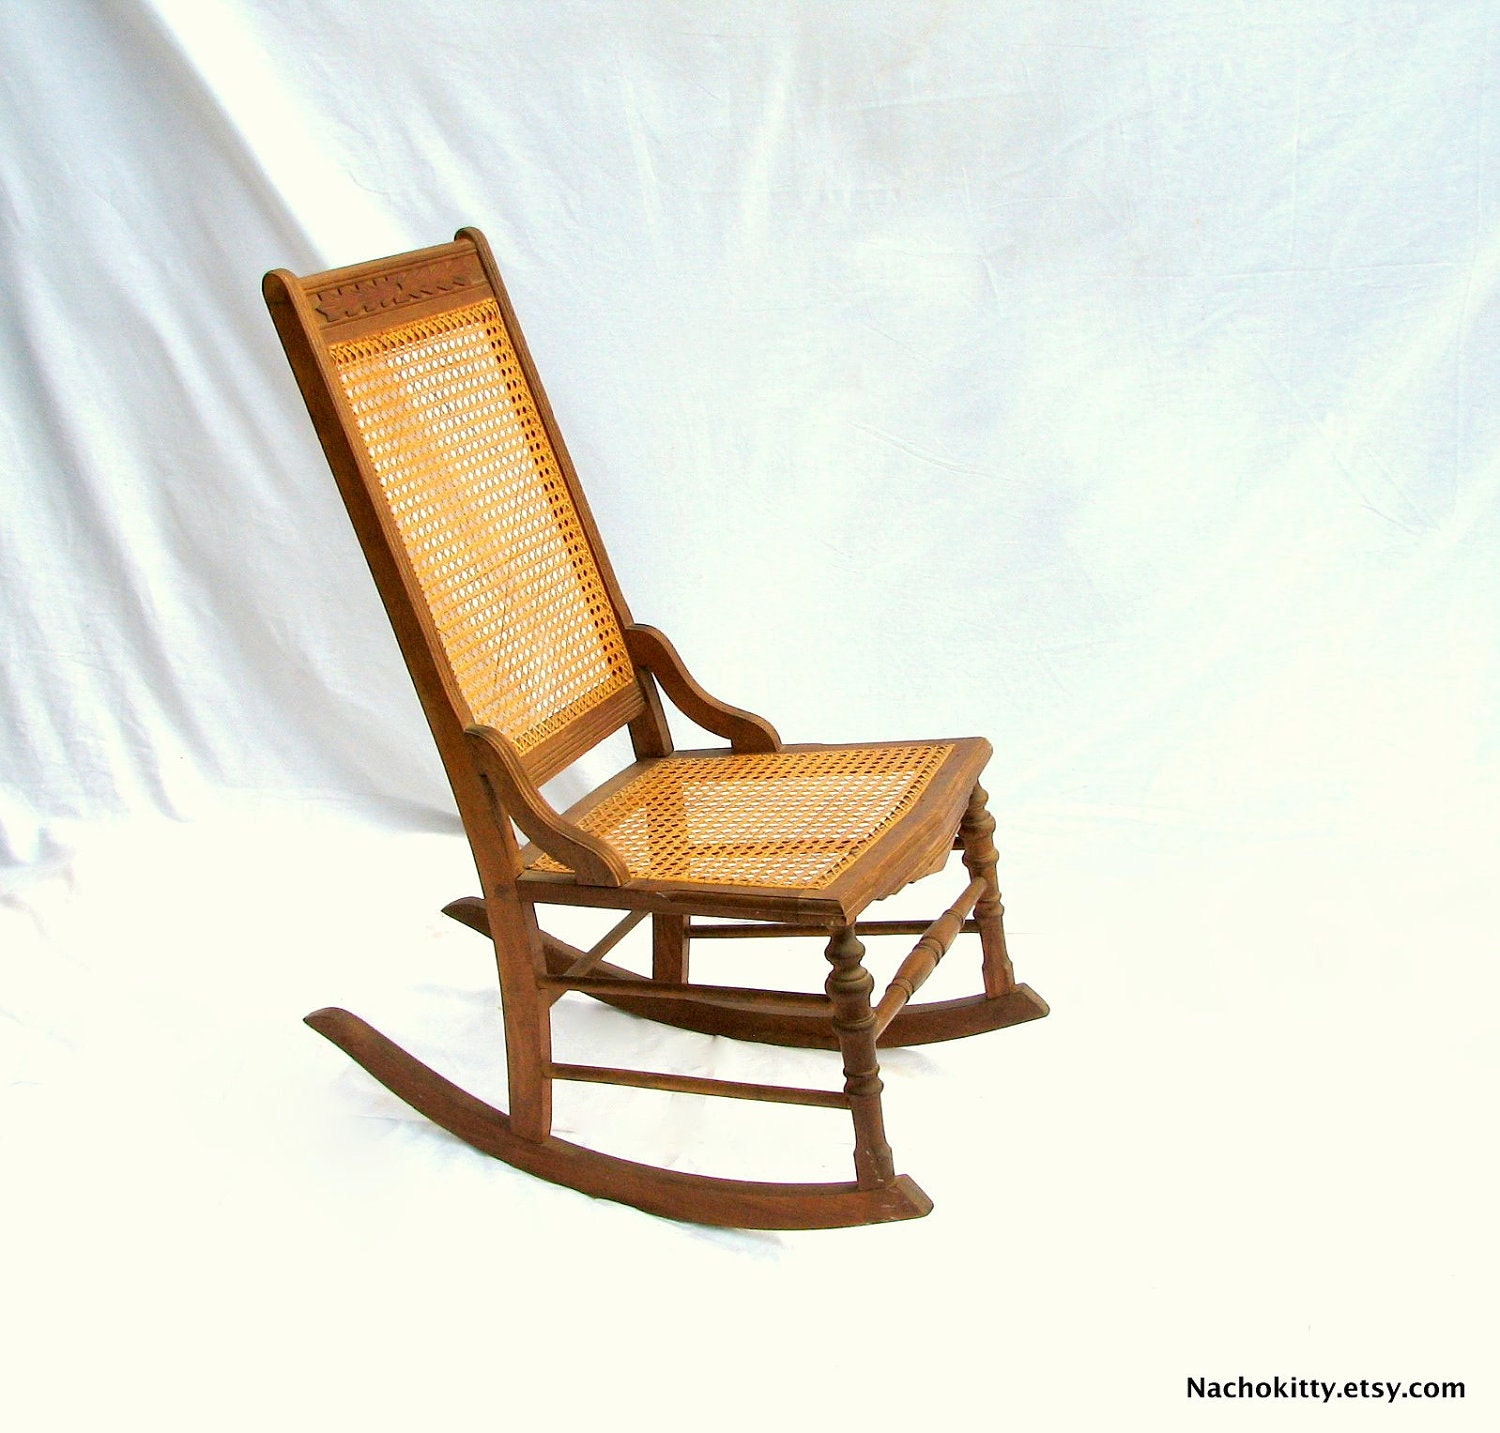 caned rocking chair antique hand carved hardwood by nachokitty. Black Bedroom Furniture Sets. Home Design Ideas